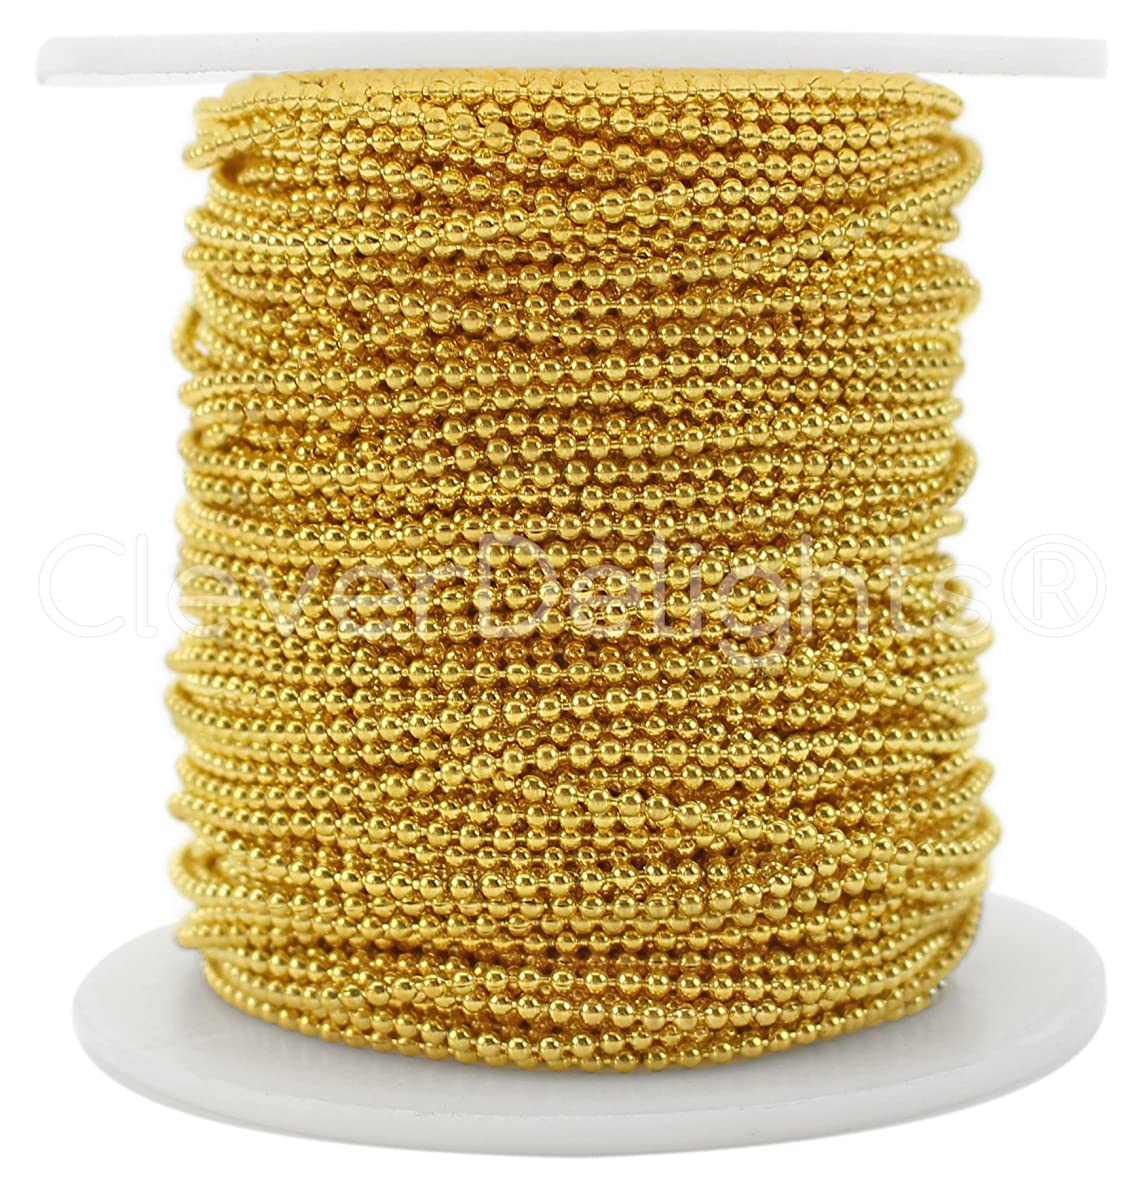 CleverDelights Ball Chain Spool - 100 Feet - 1.5mm Ball (Small) - Gold Color - Bulk Chain Roll